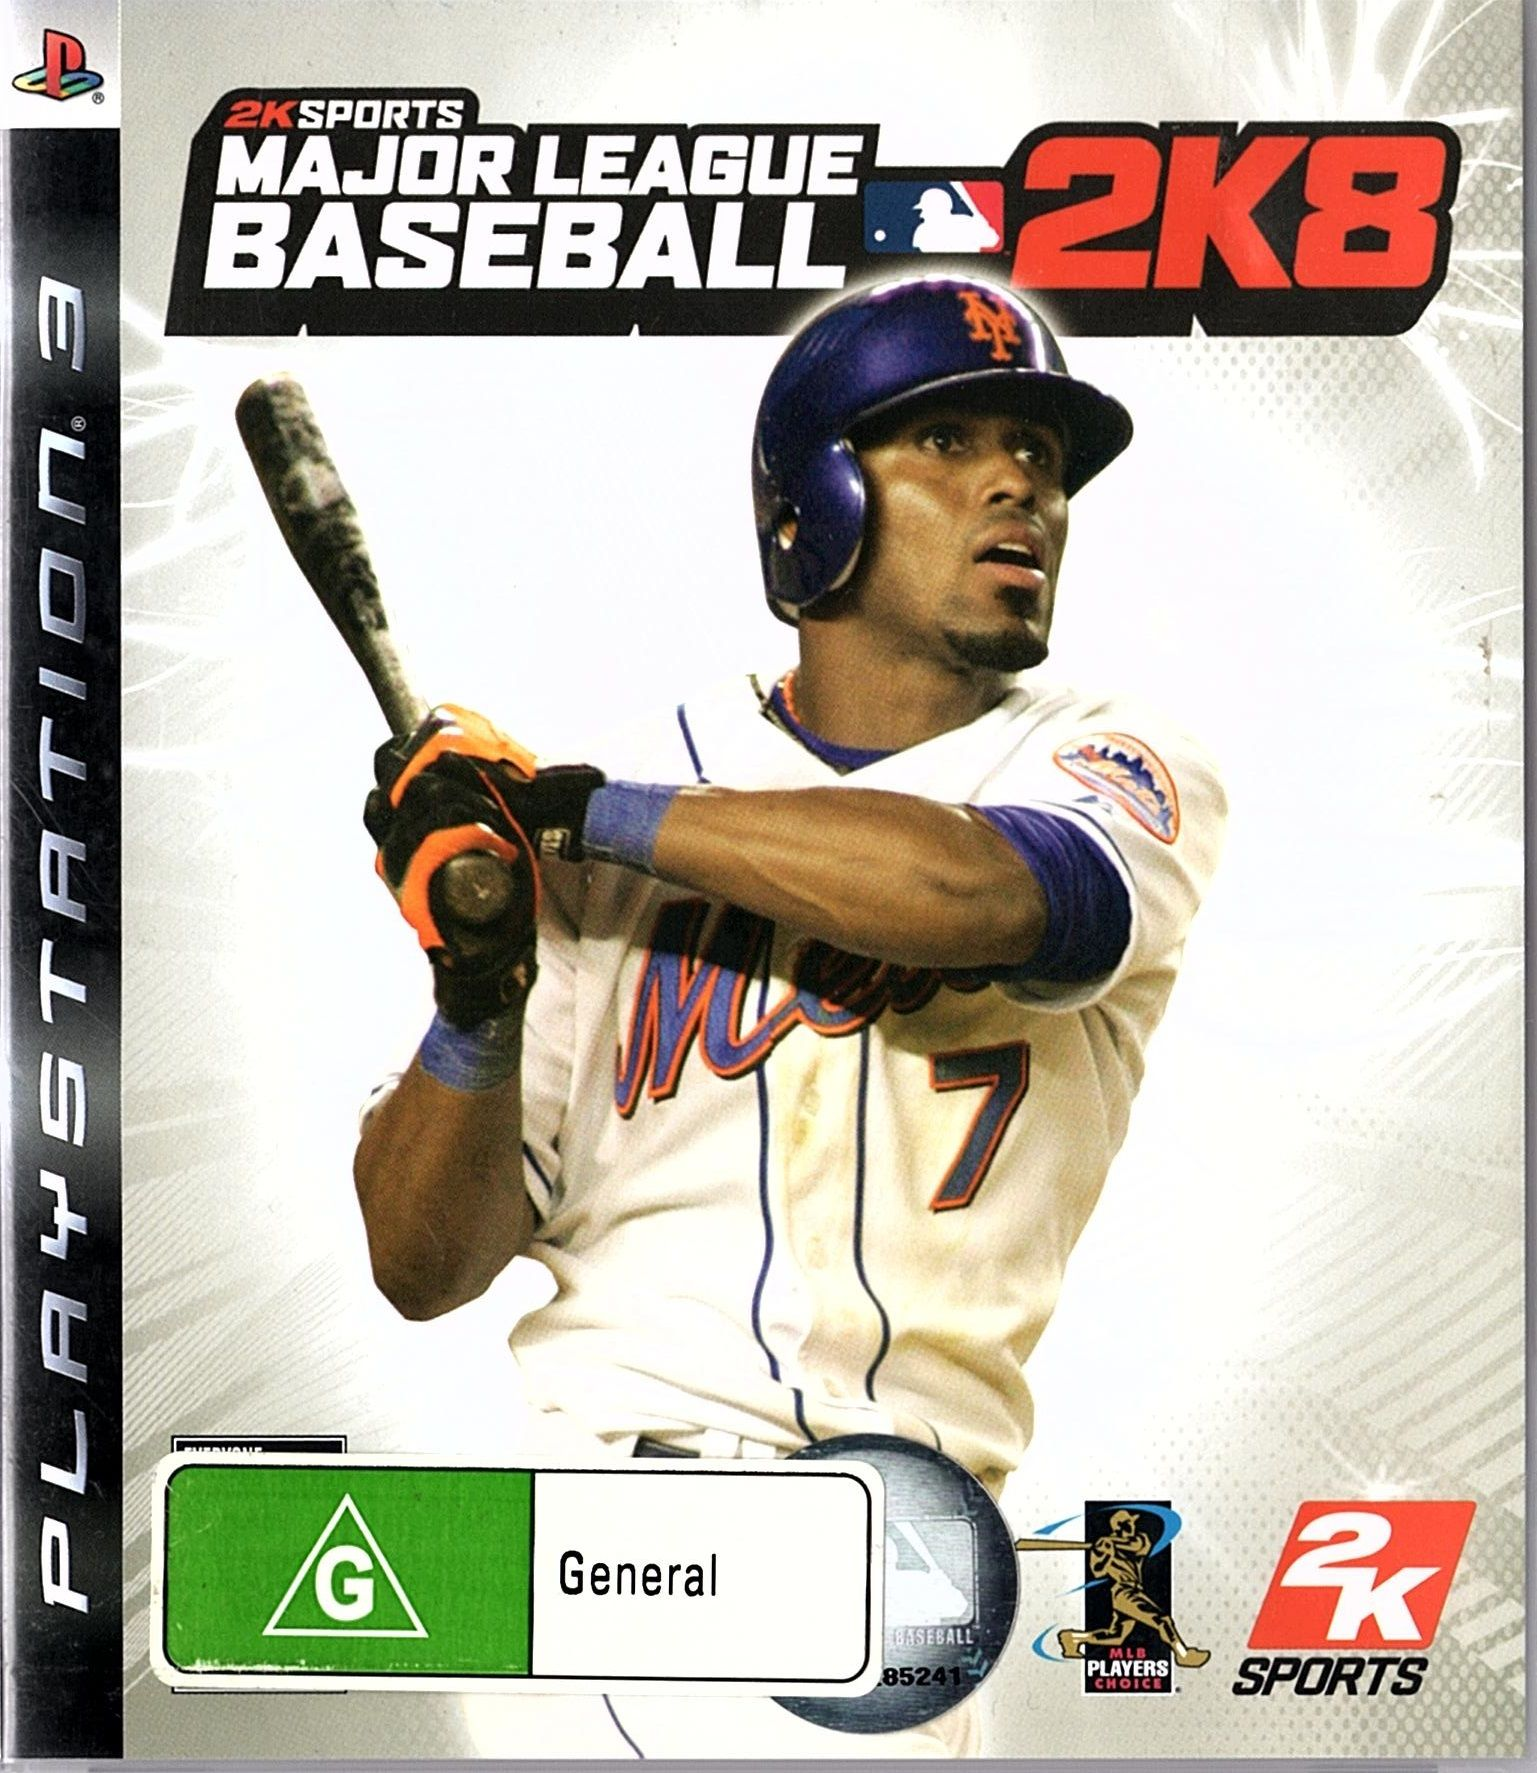 Pin By Aaron Viles On Playstation With Images Major League Baseball